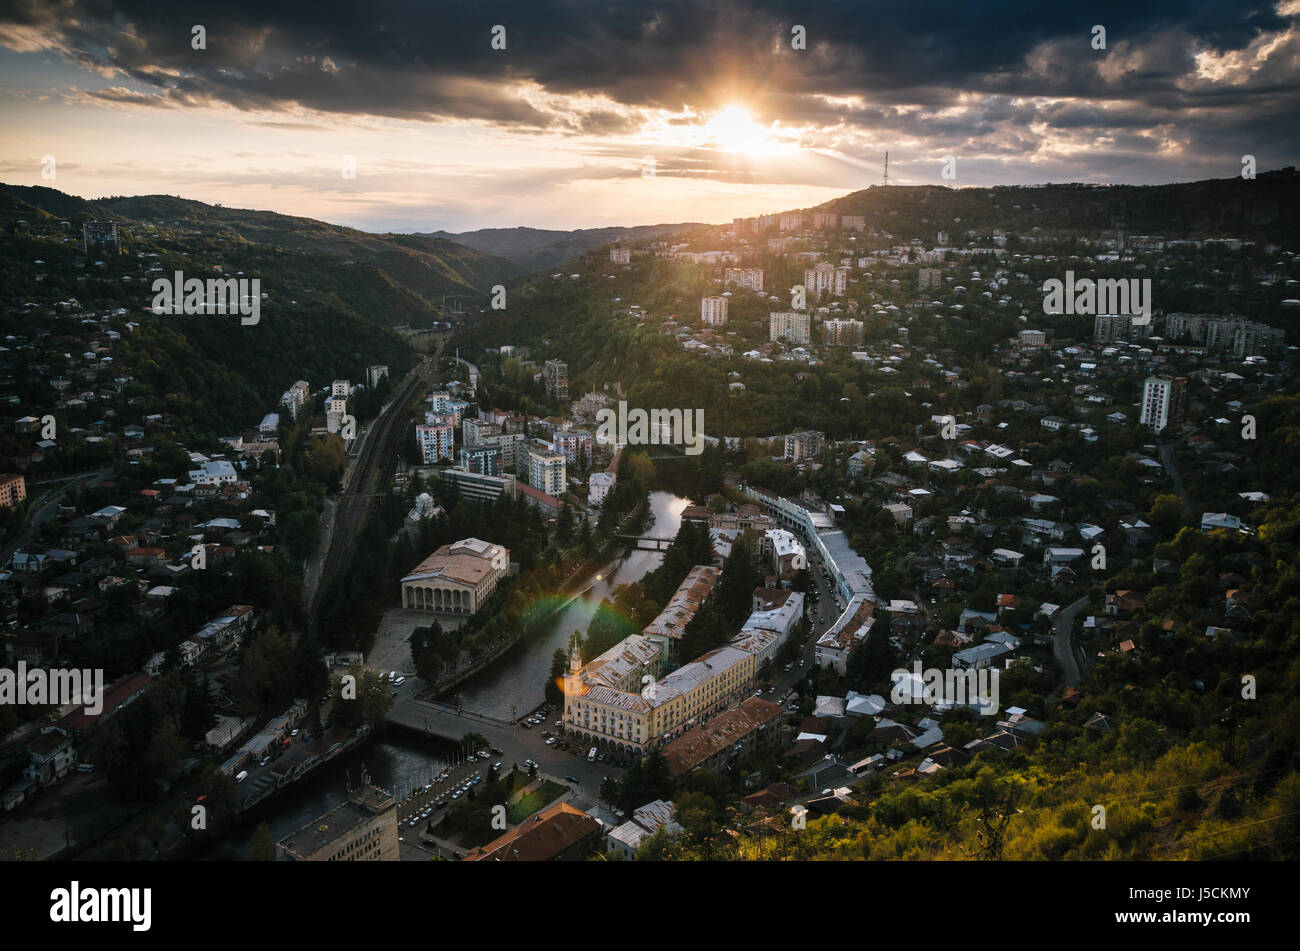 Aerial view from the cable car of Chiatura at sunset. Georgia. - Stock Image